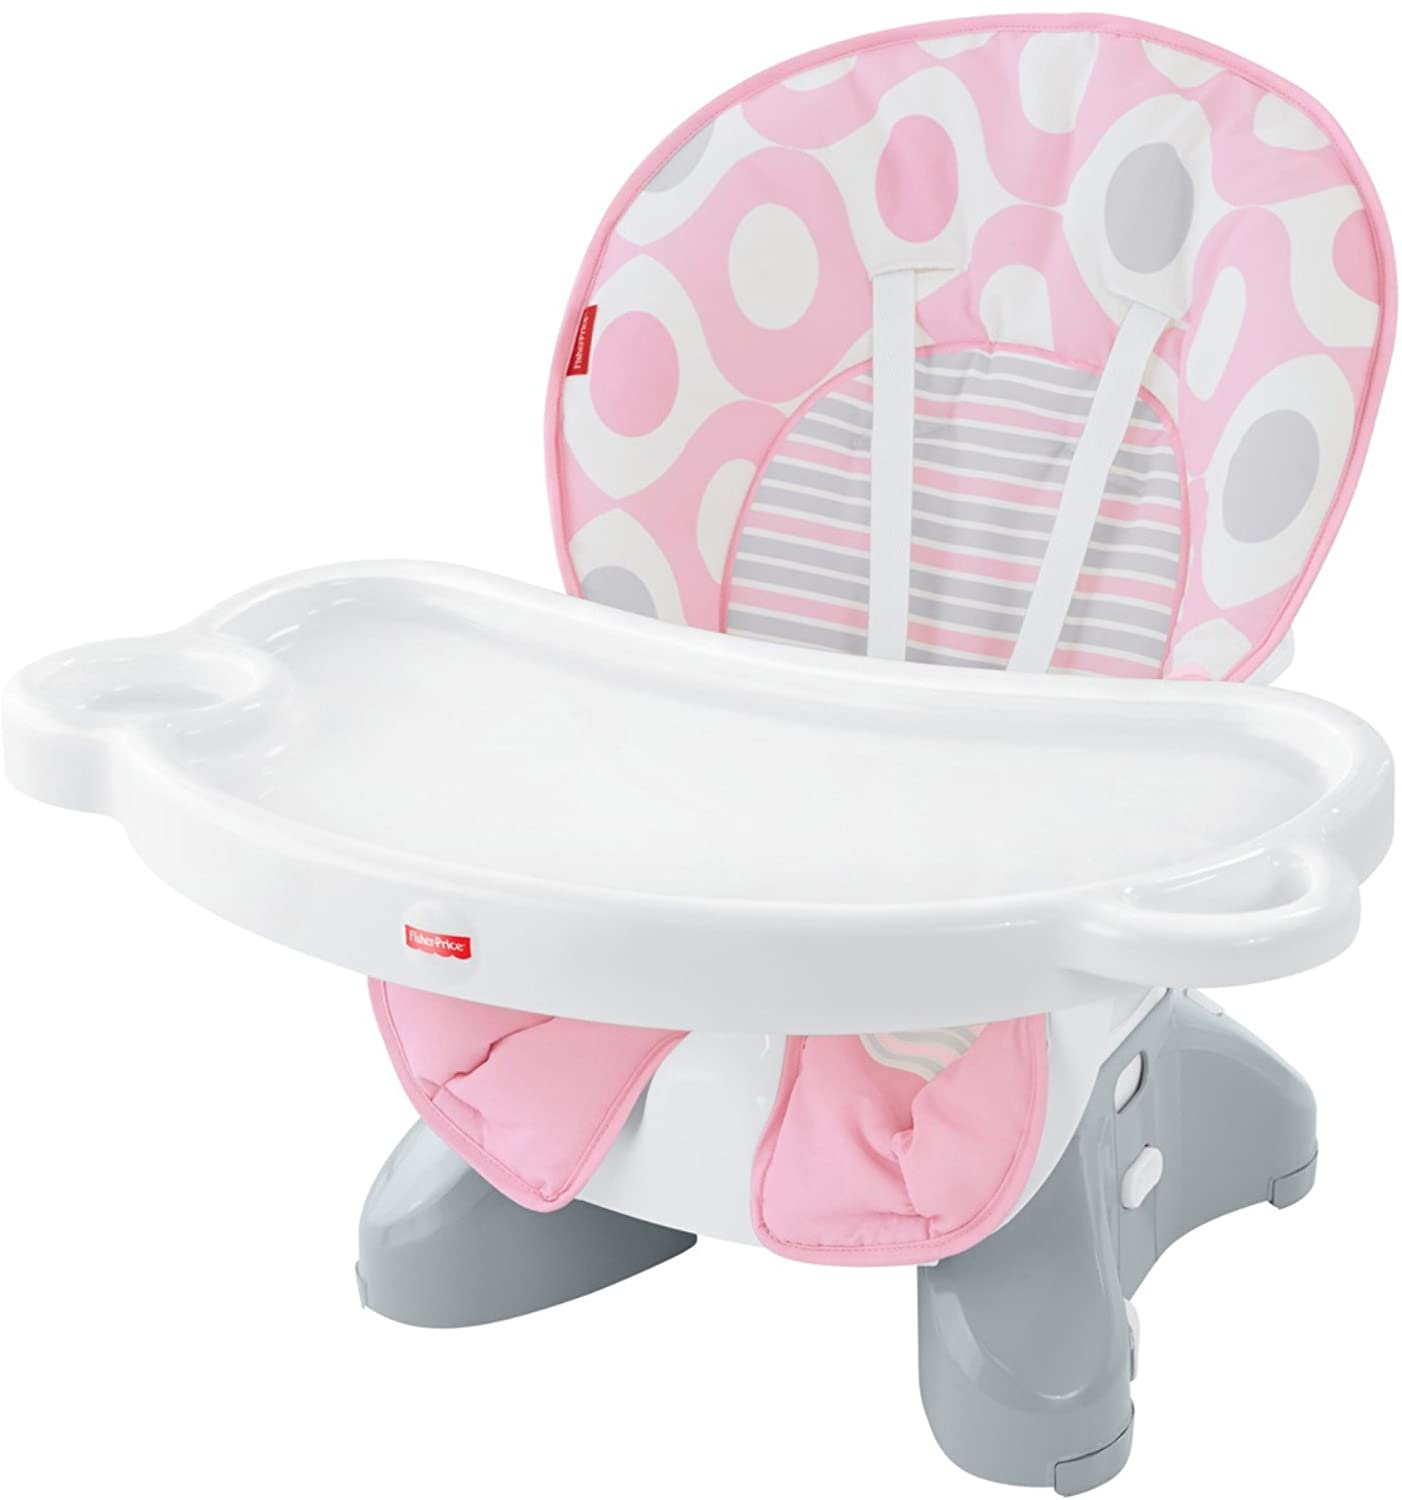 Fisher Price SpaceSaver High Chair Pink Ellipse Amazon Baby